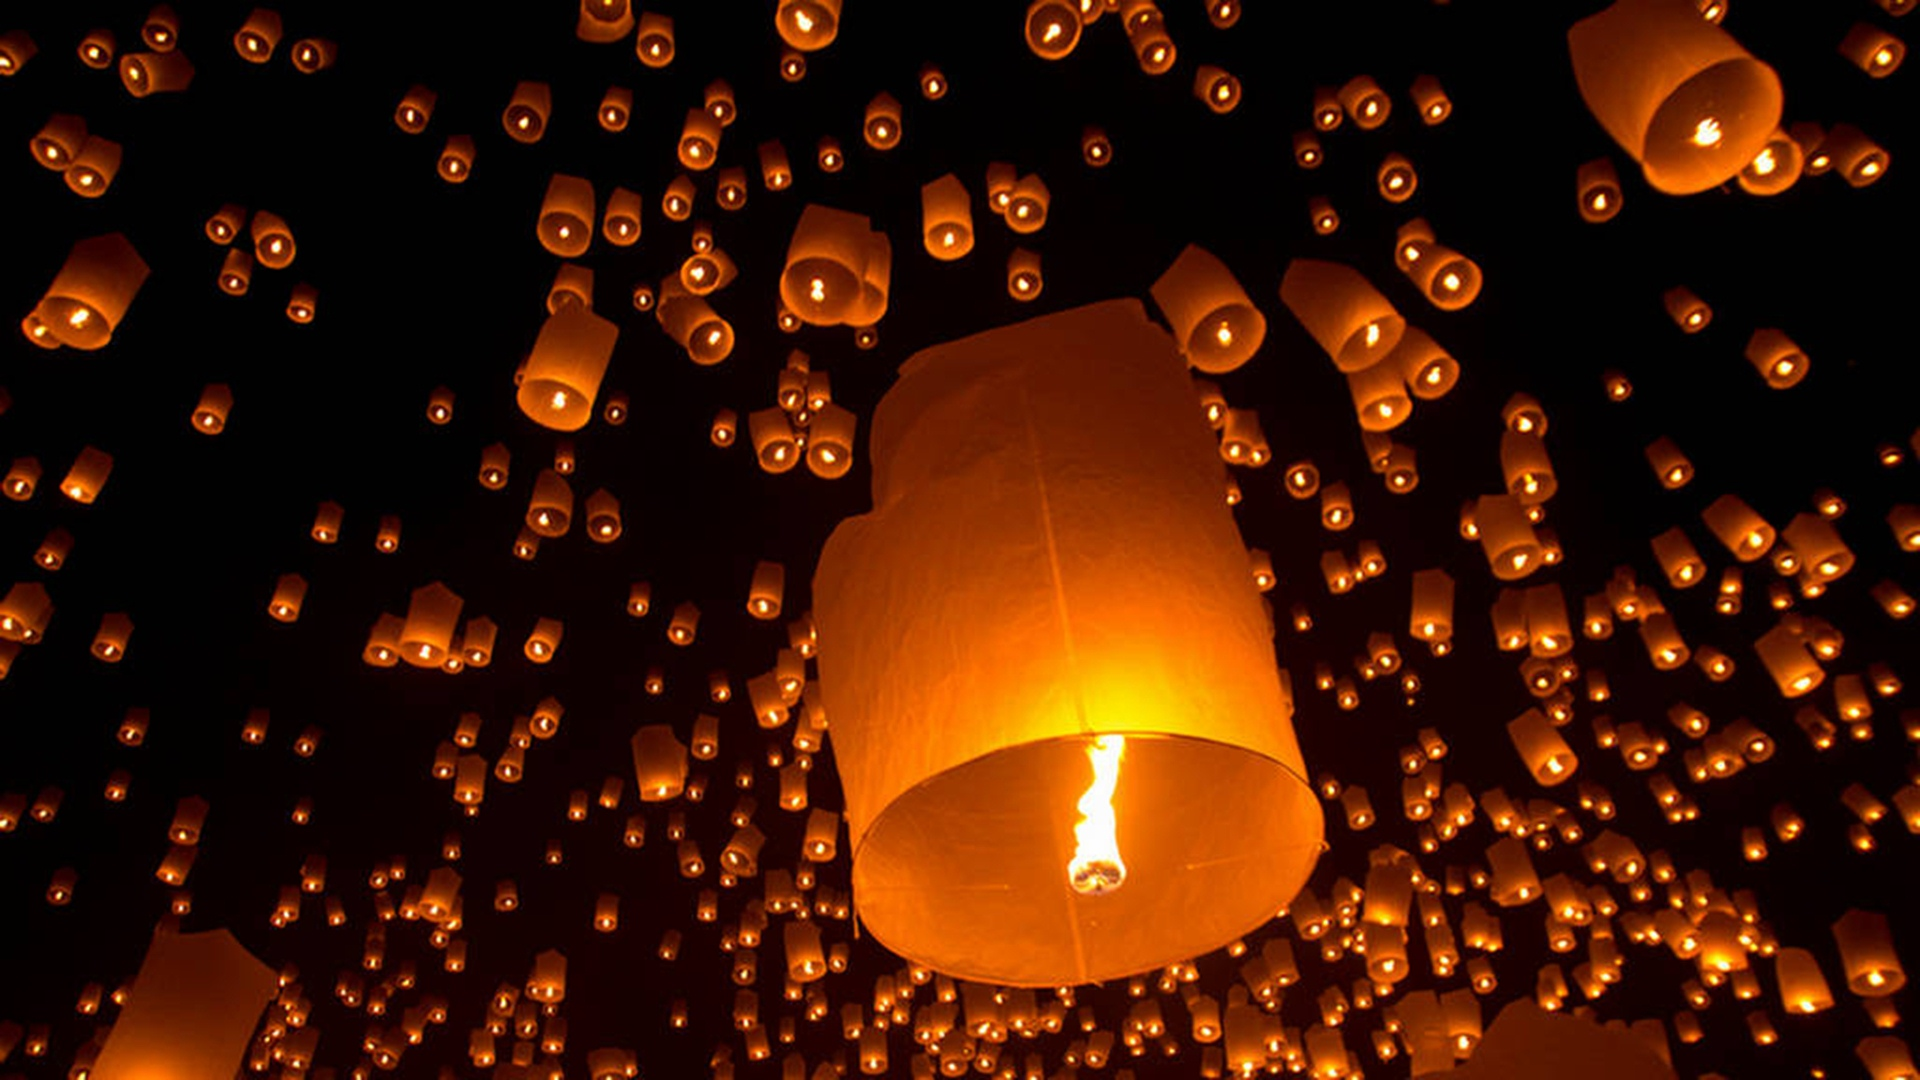 Sky Lanterns Wallpaper Iphone Diwali Sky Lamp Wallpaper